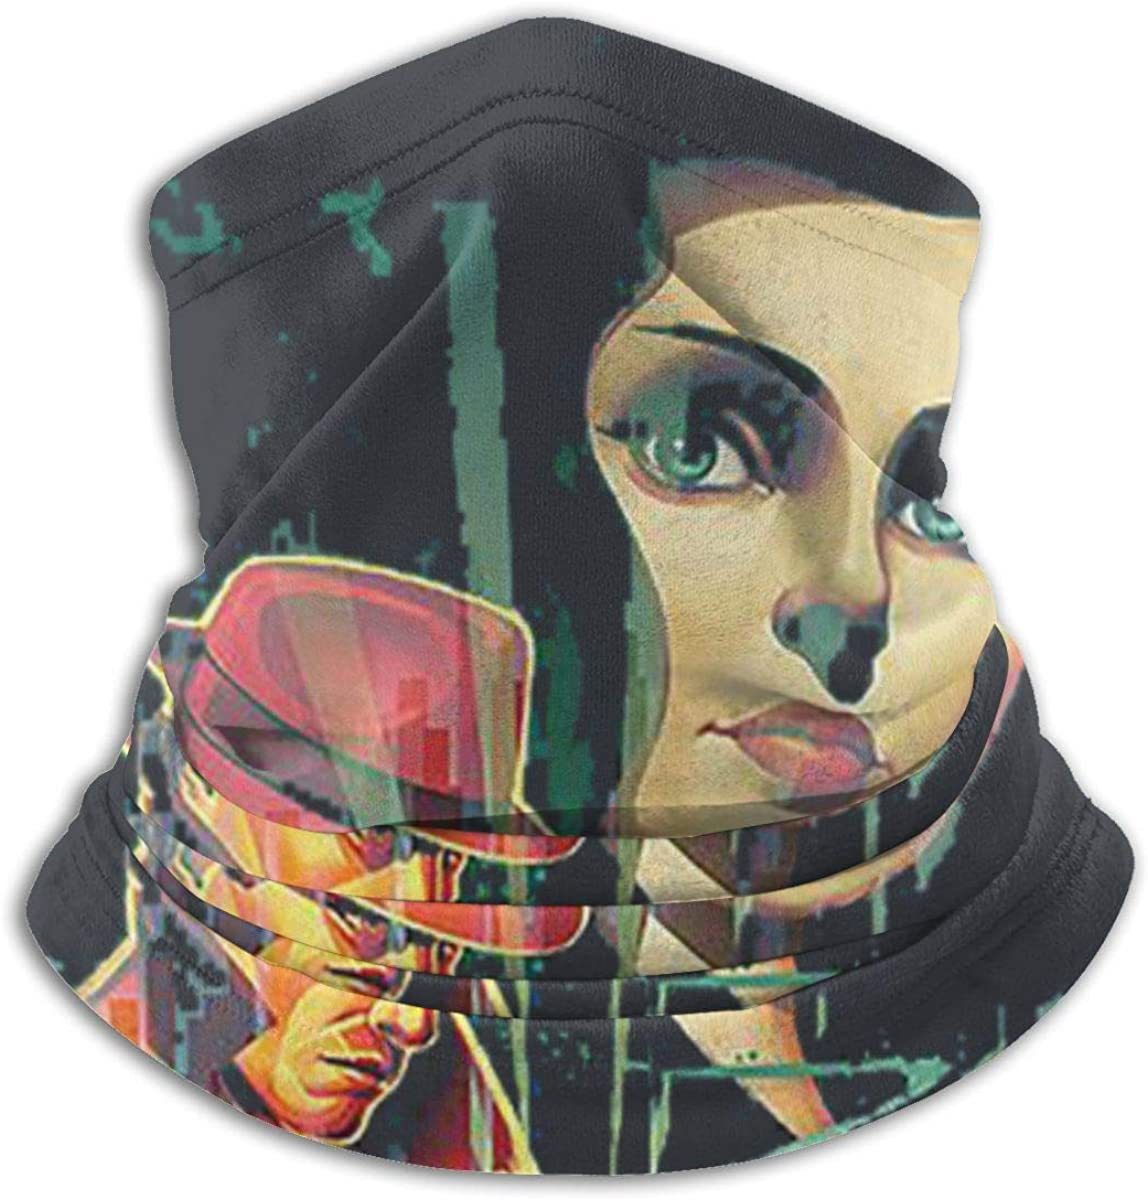 BioShock Unisex Comfortable And Breathable Fashion Scarf Face Tube Neck Scarf Neck Warm Scarf